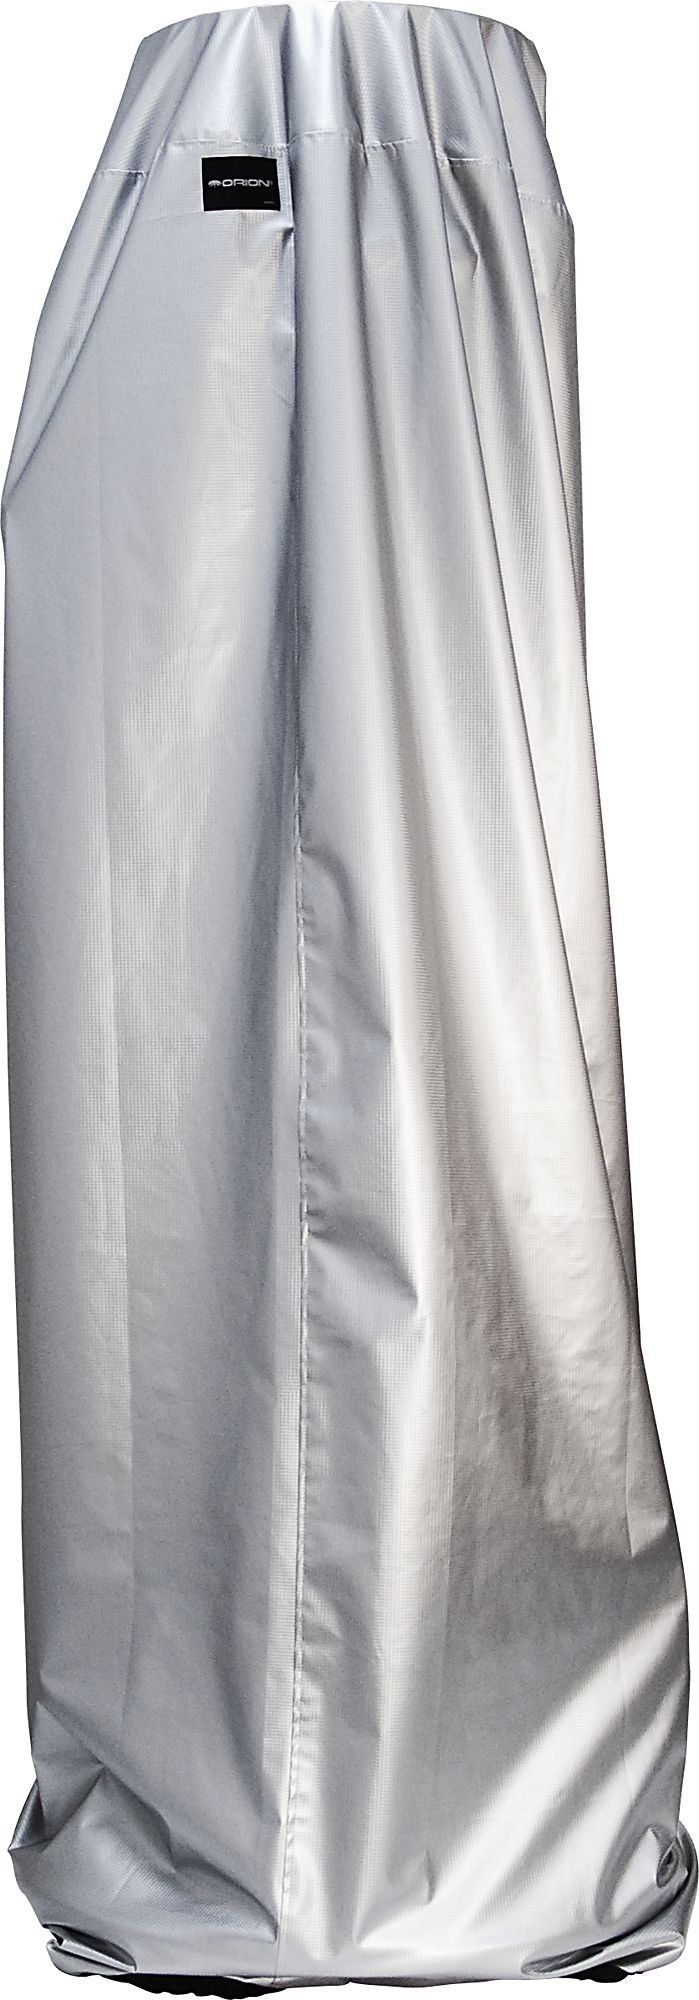 Orion 15207 Scope Cloak 12-Inch to 16-Inch Dobsonians by Orion